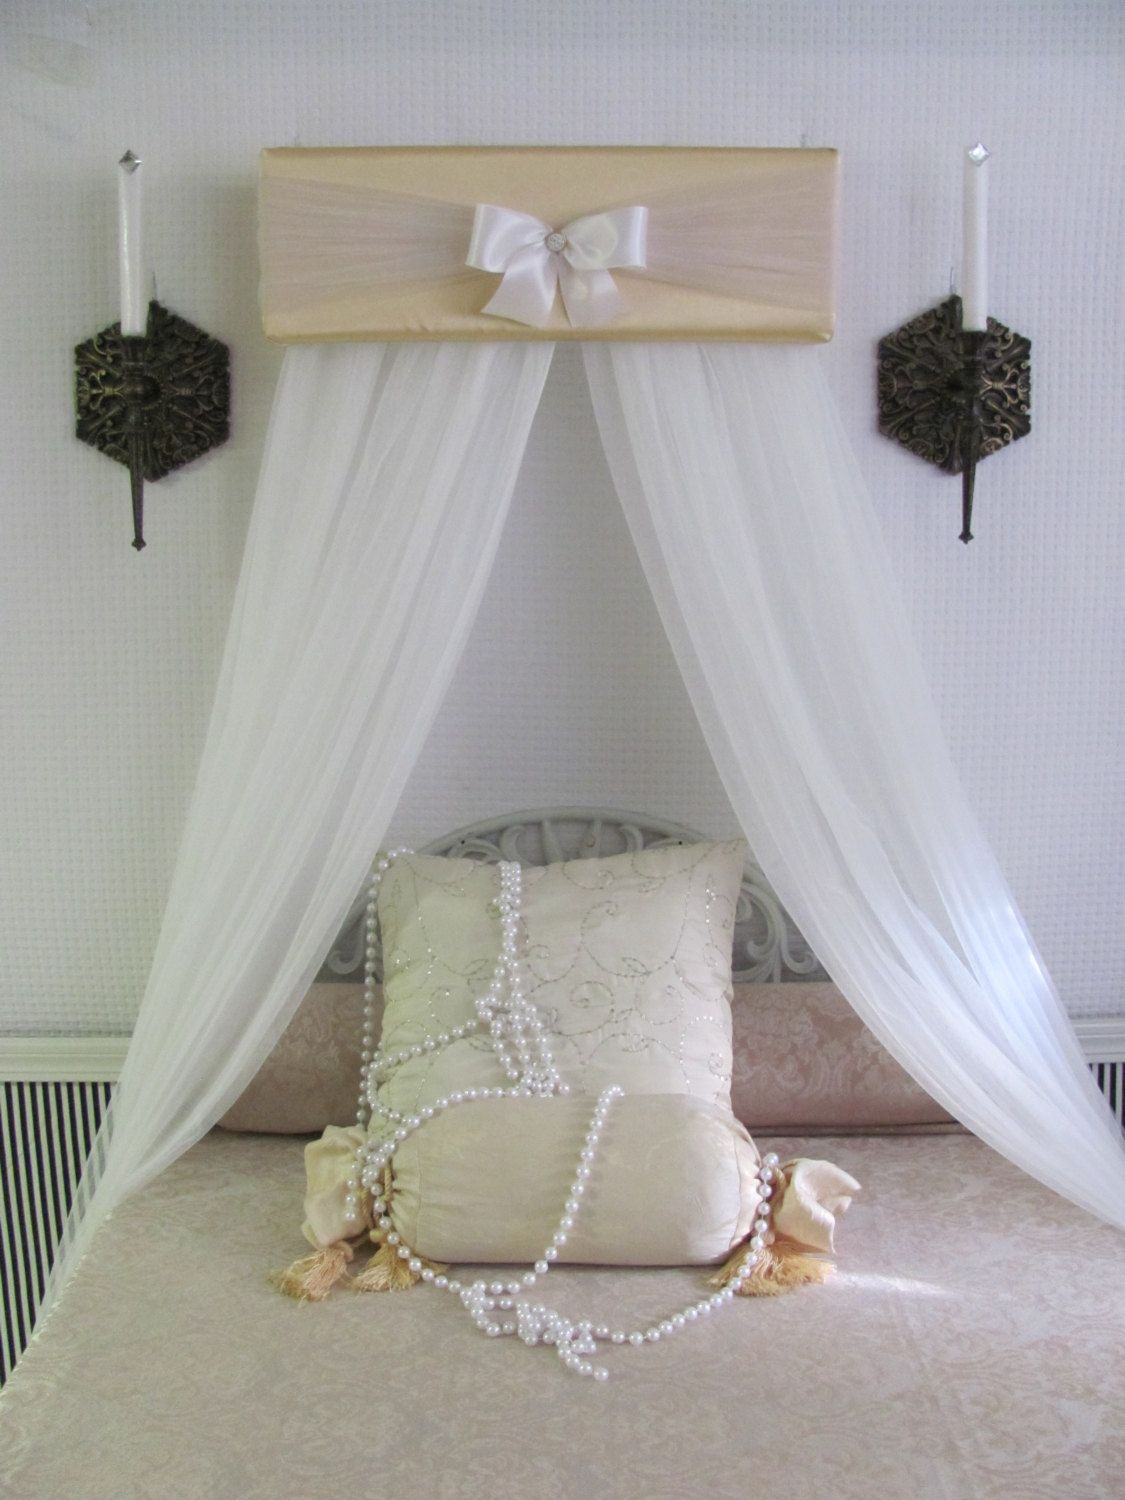 CrOwN Pelmet Upholstered Awning Gold Ivory Cornice Teester Girls Baby Bedroom Room decor Princess Bed Canopy Handmade So Zoey Boutique SALE by ... & CrOwN Pelmet Upholstered Awning Gold Ivory Cornice Teester Girls ...